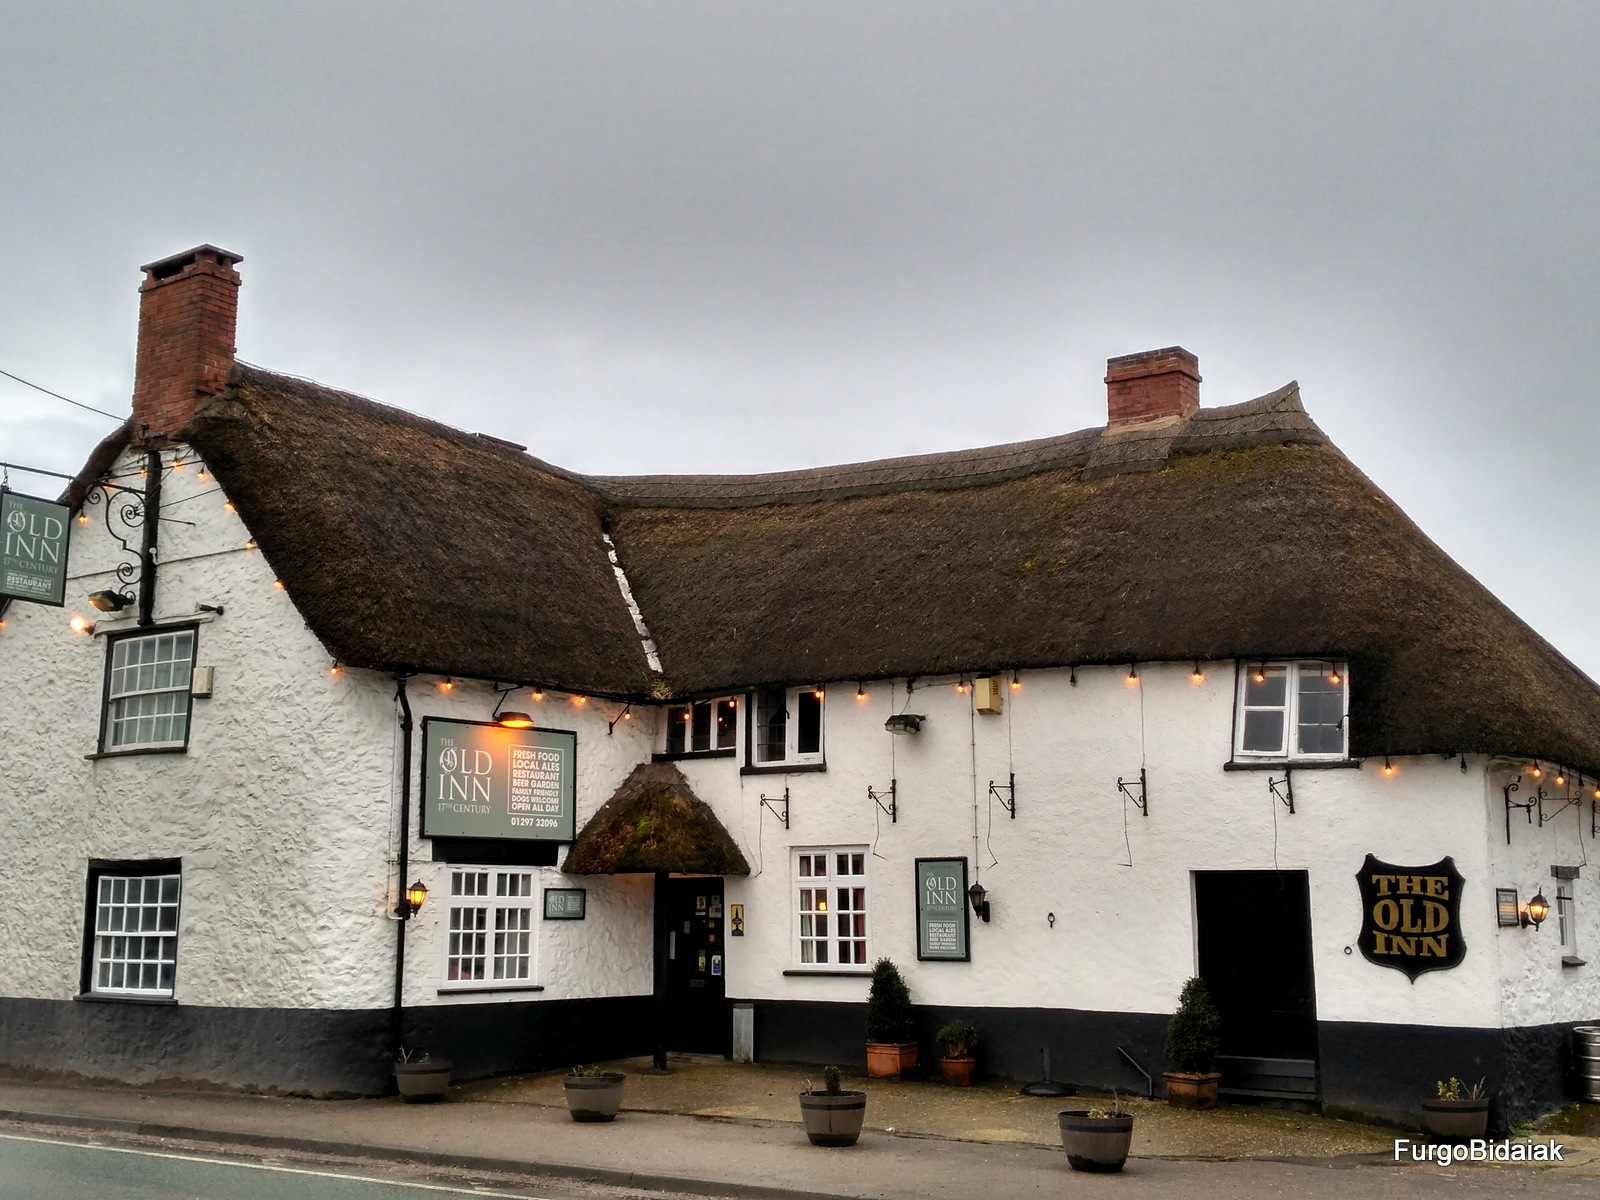 The Old Inn, Britstops, FurgoBidaiak